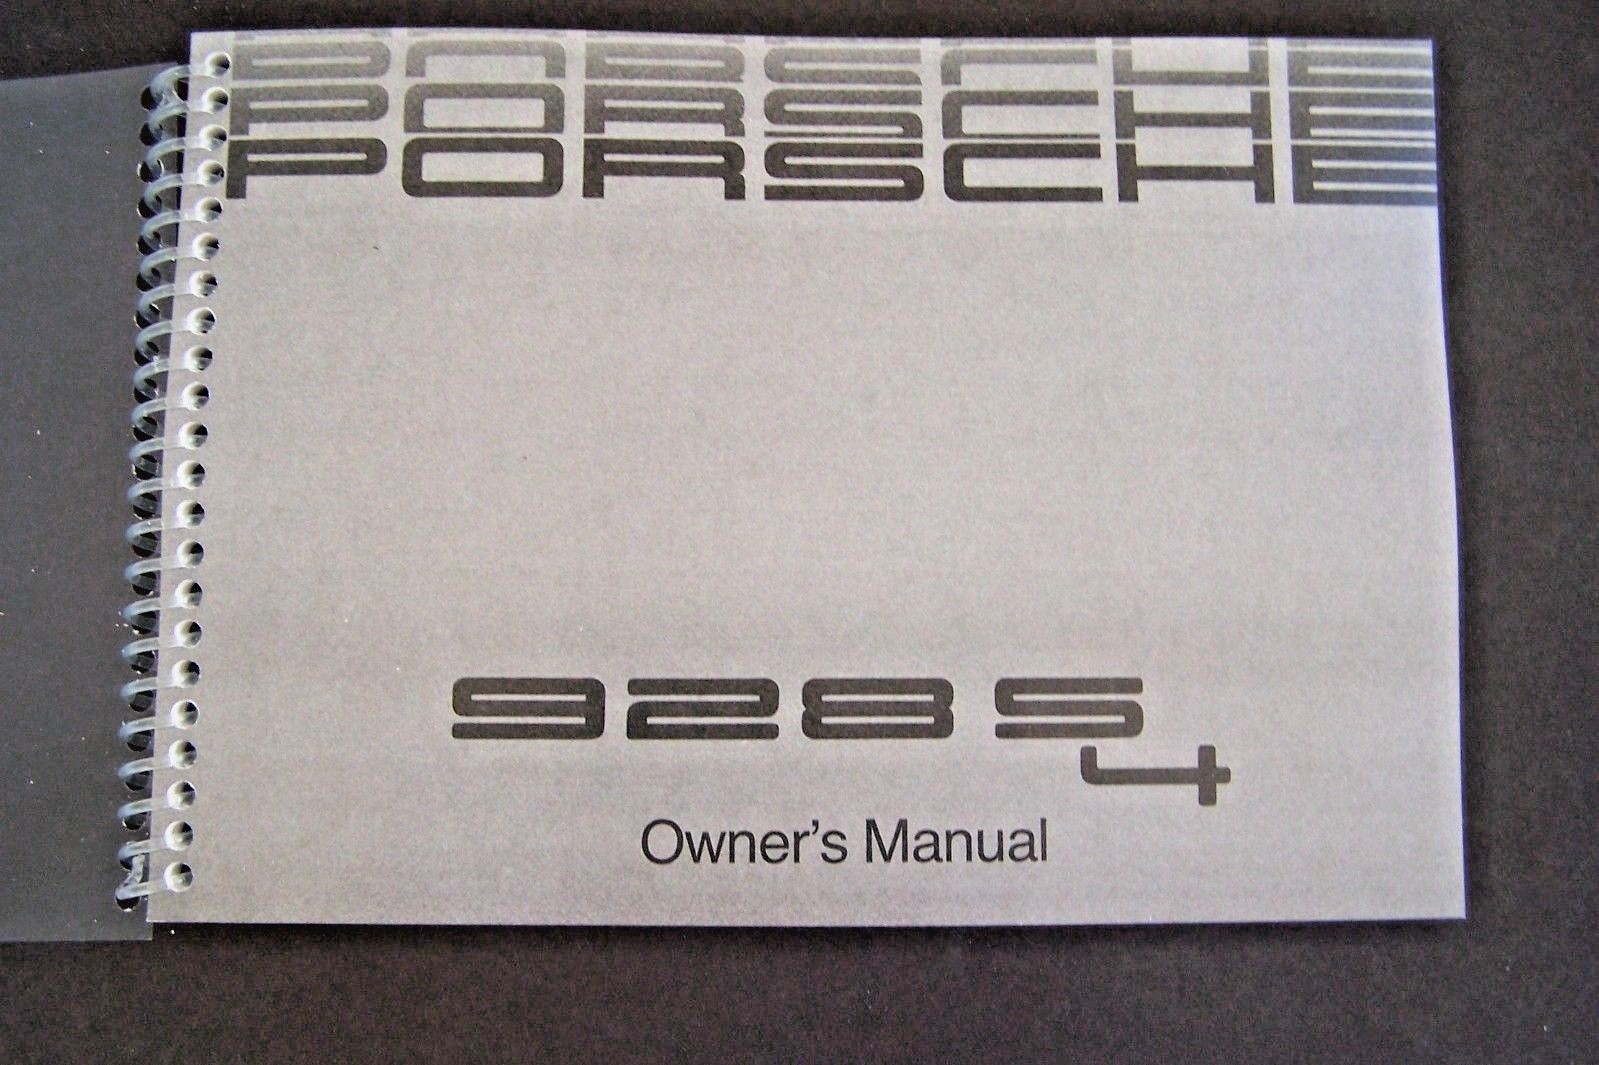 Primary image for 1989 Porsche 928 s4 Owners Manual Parts Service 928s4 New factory Reprint